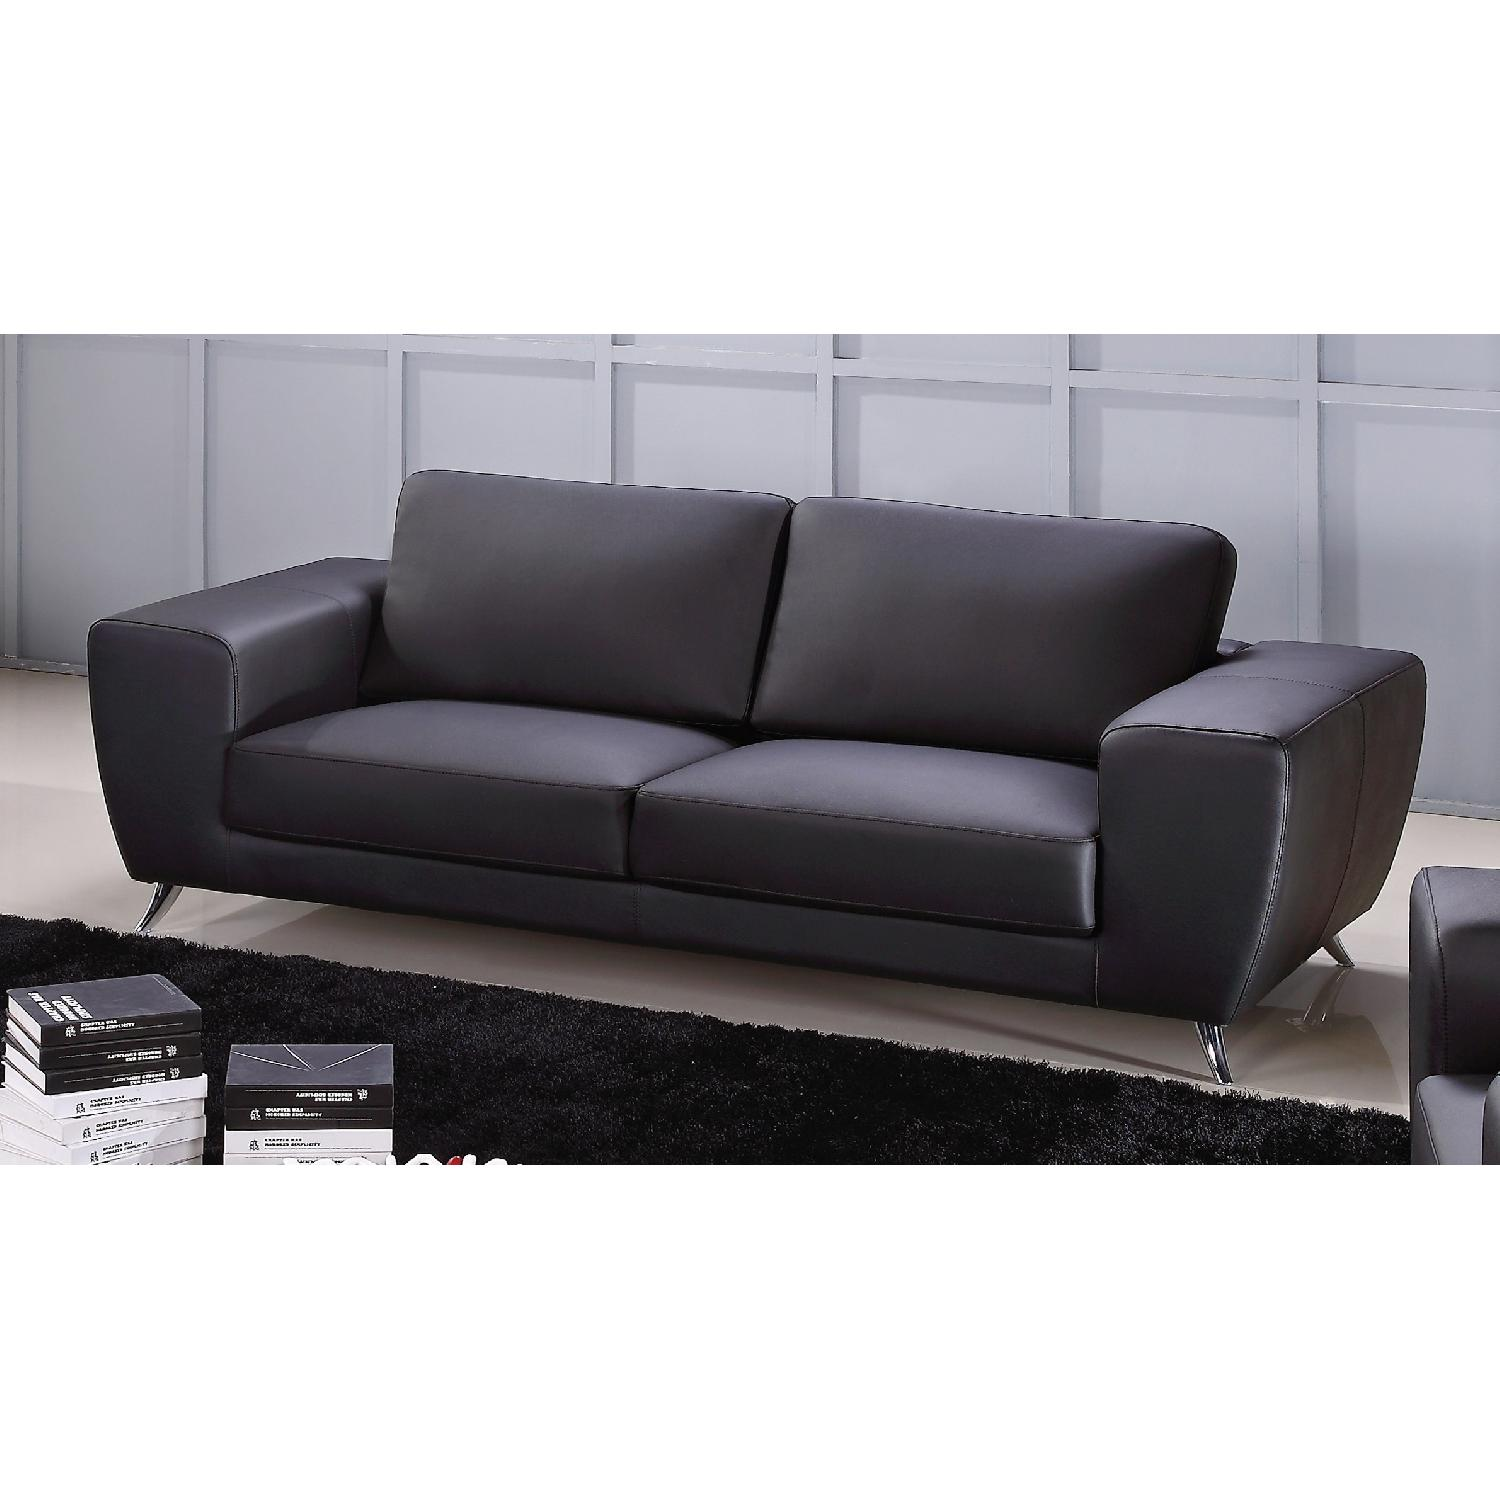 Modern Style Sofa in Black Top Grain Leather w/ Clean Lines ...